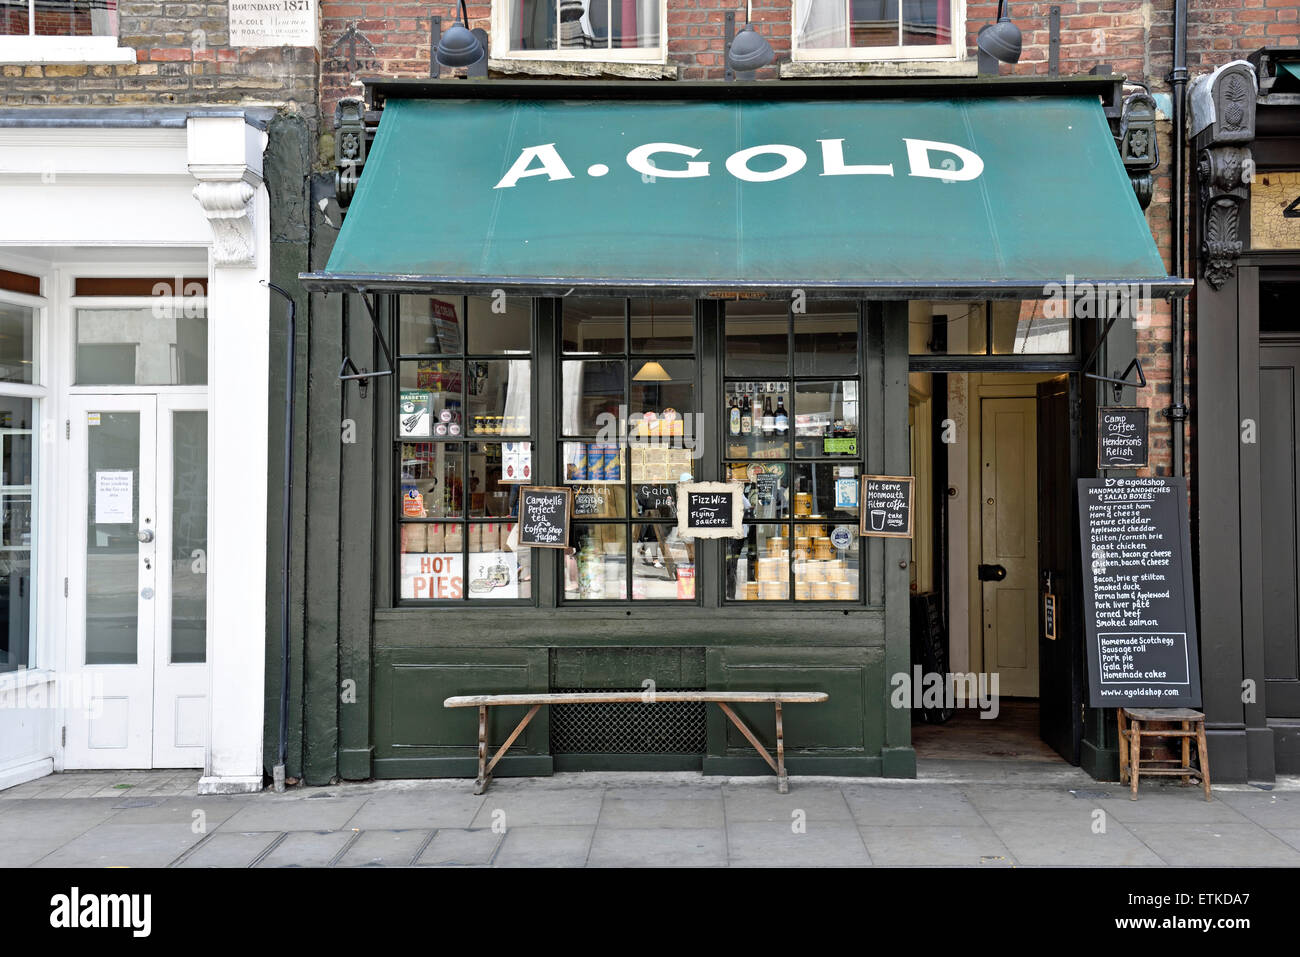 A. Gold traditional shop front Spitalfields, London Borough of Tower Hamlets, England, Britain UK - Stock Image